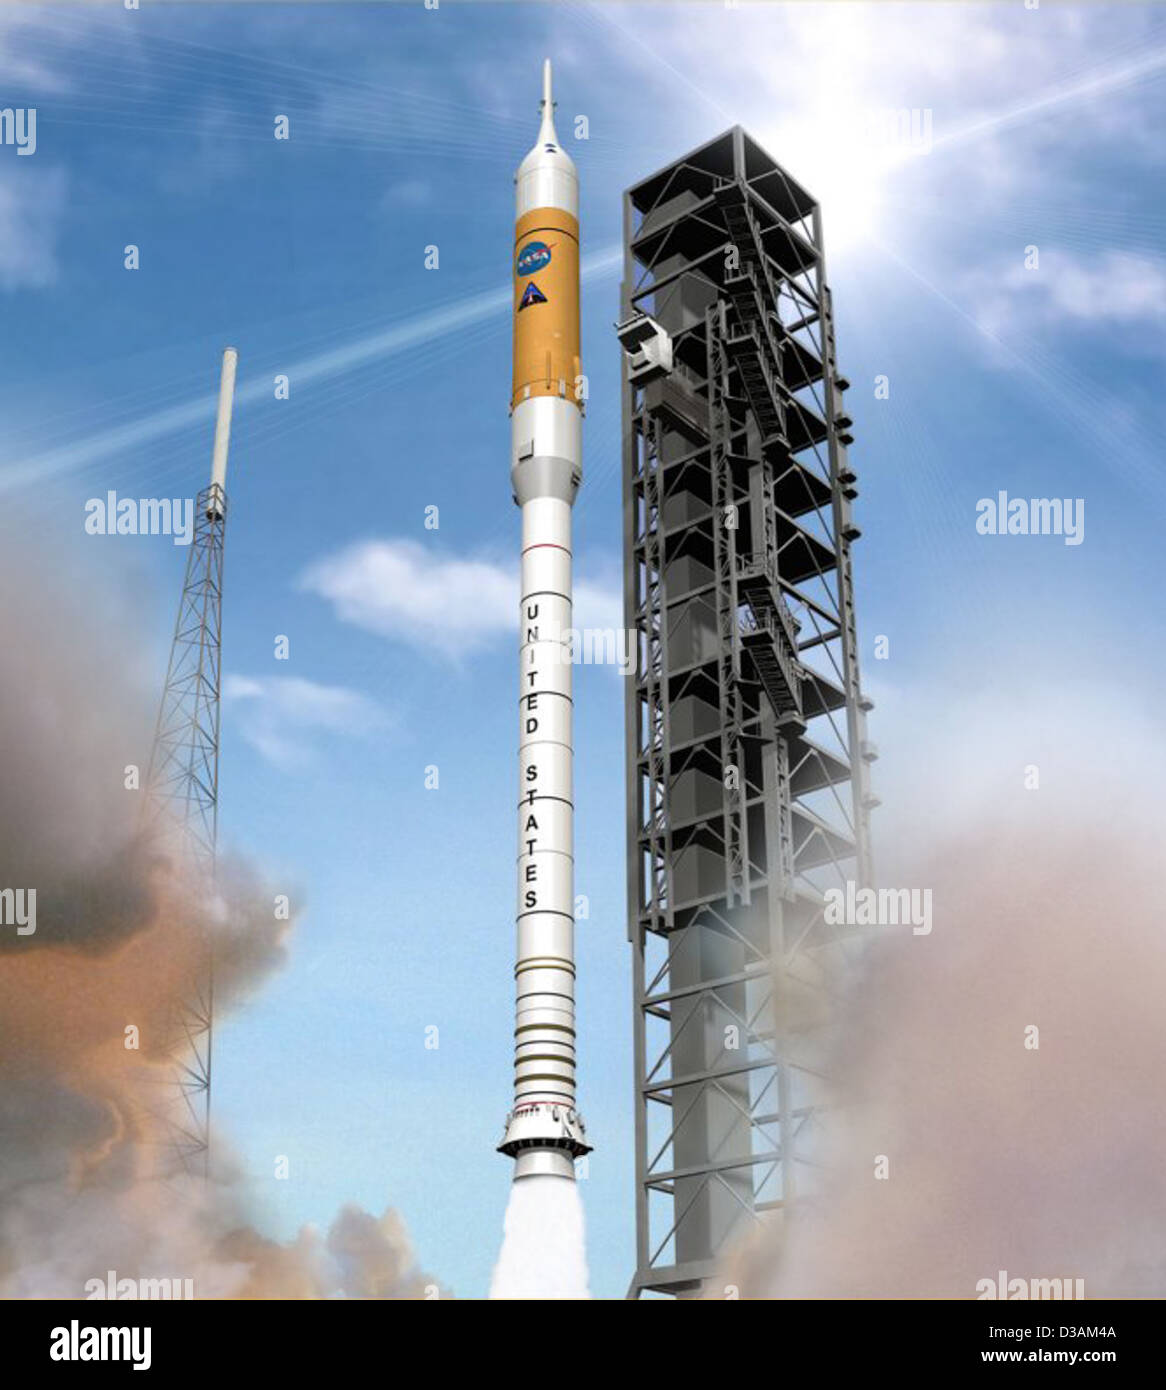 Artist Concept: Ares I Rocket Launch (Sept. 10, 2008) - Stock Image